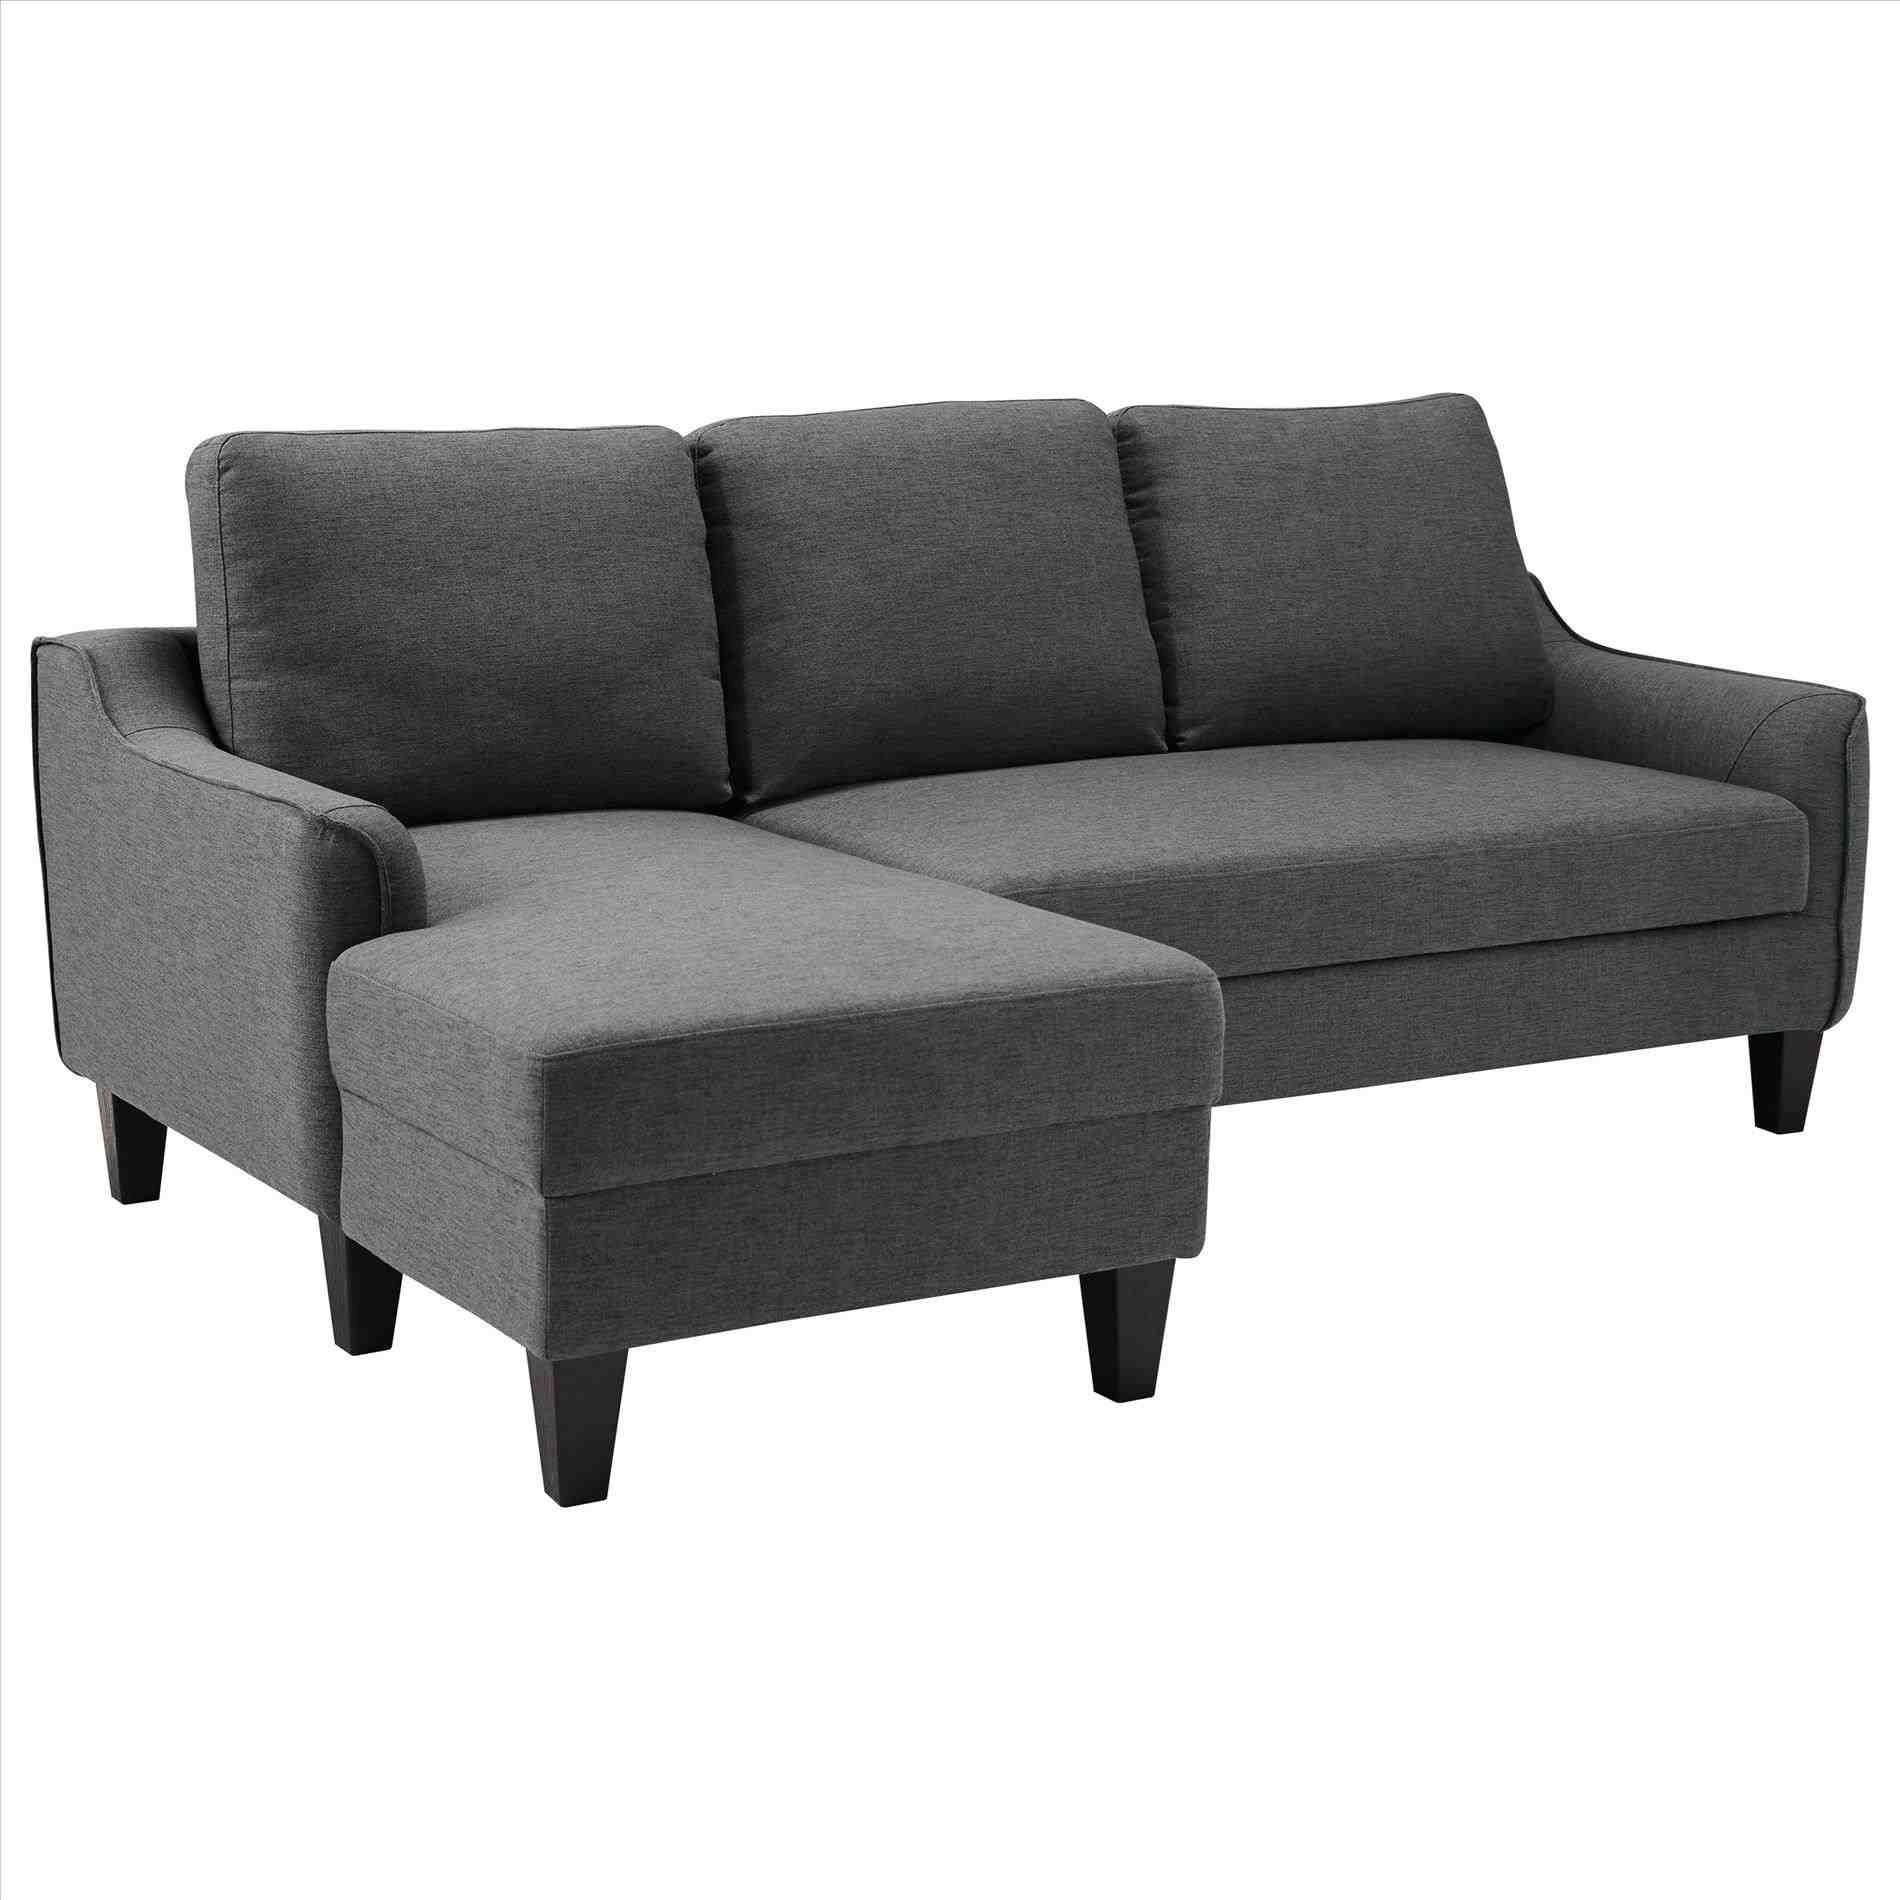 Cheap Sofa Beds Under 100 Chaise Sofa Cheap Sofas Queen Sofa